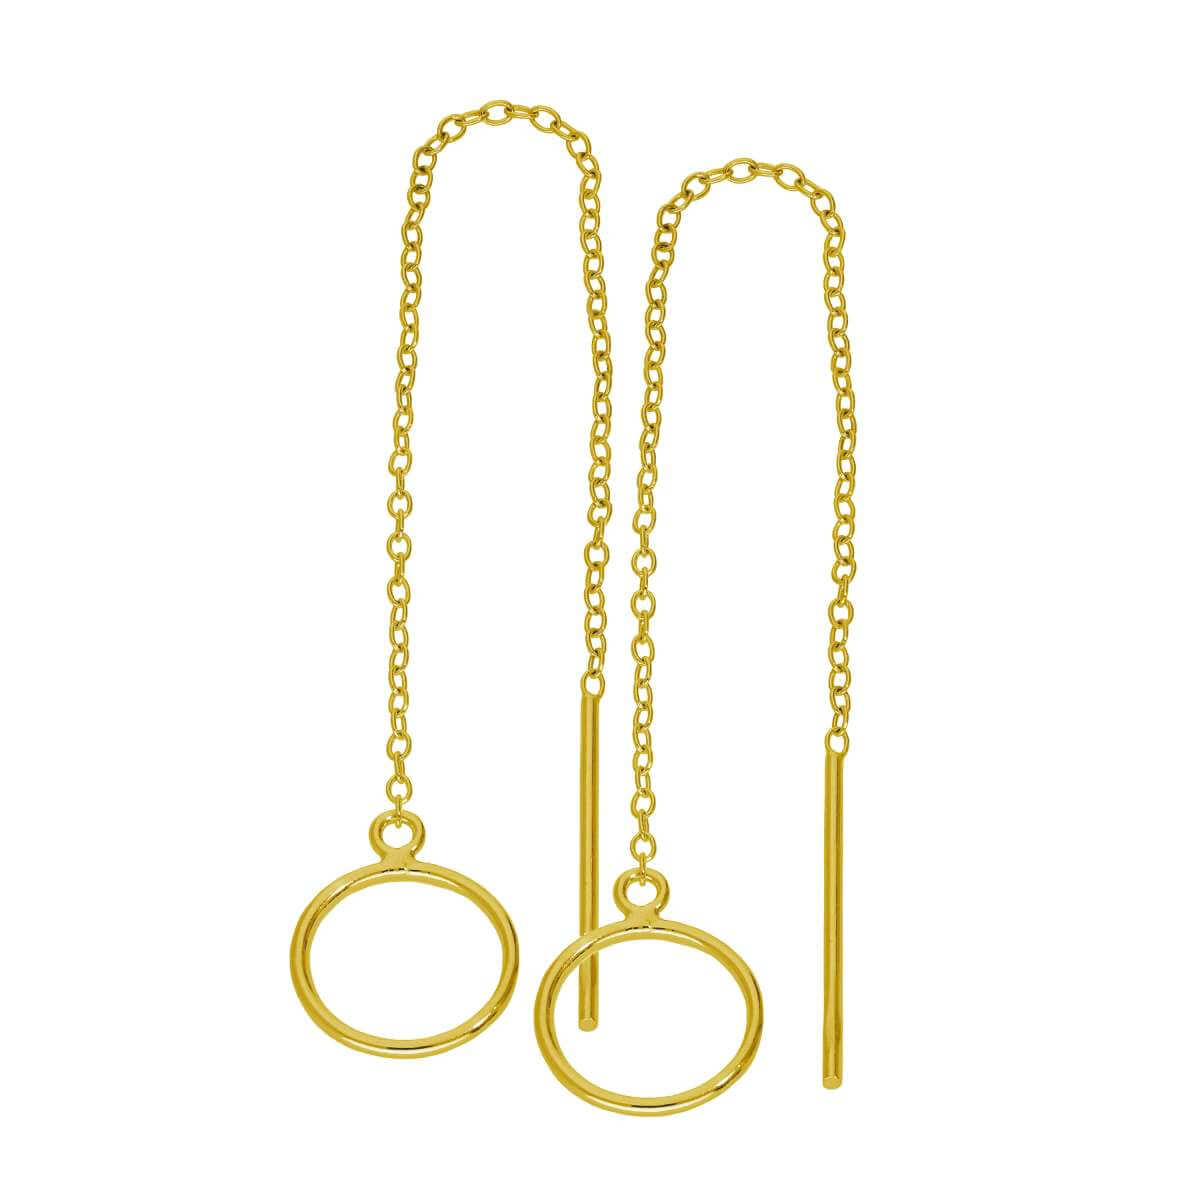 Gold Plated Sterling Silver Karma Circle Pull Through Earrings